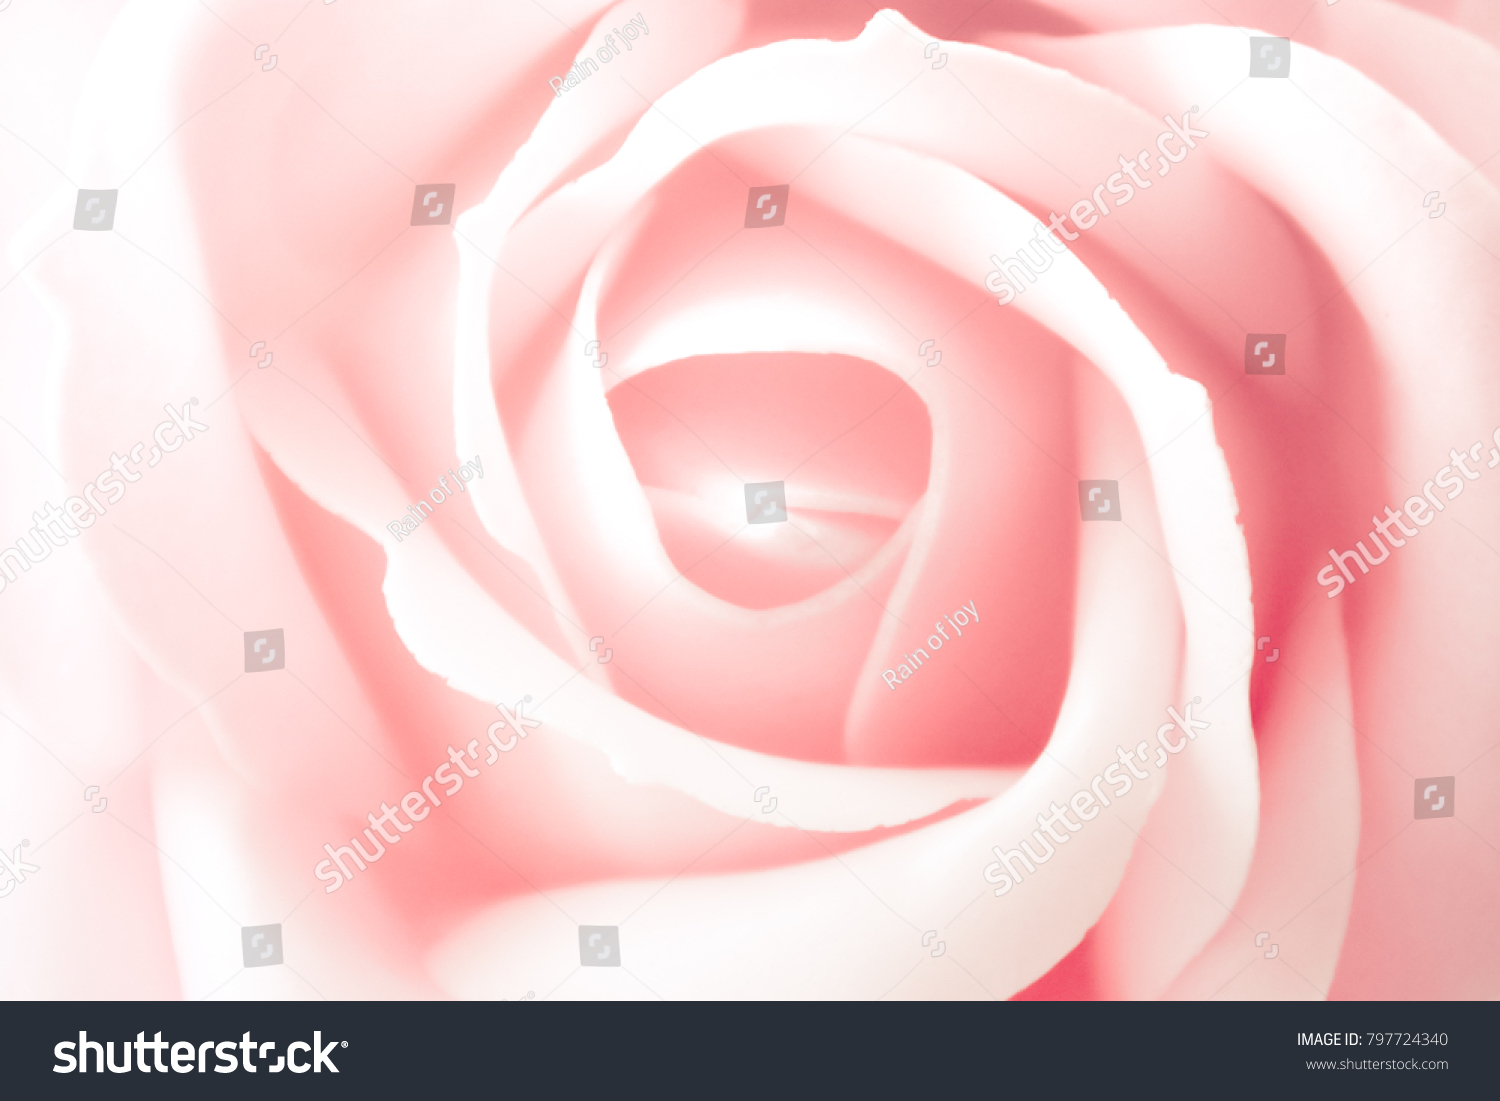 Pink Rose Meaning Lovely Romance Stock Photo Edit Now 797724340